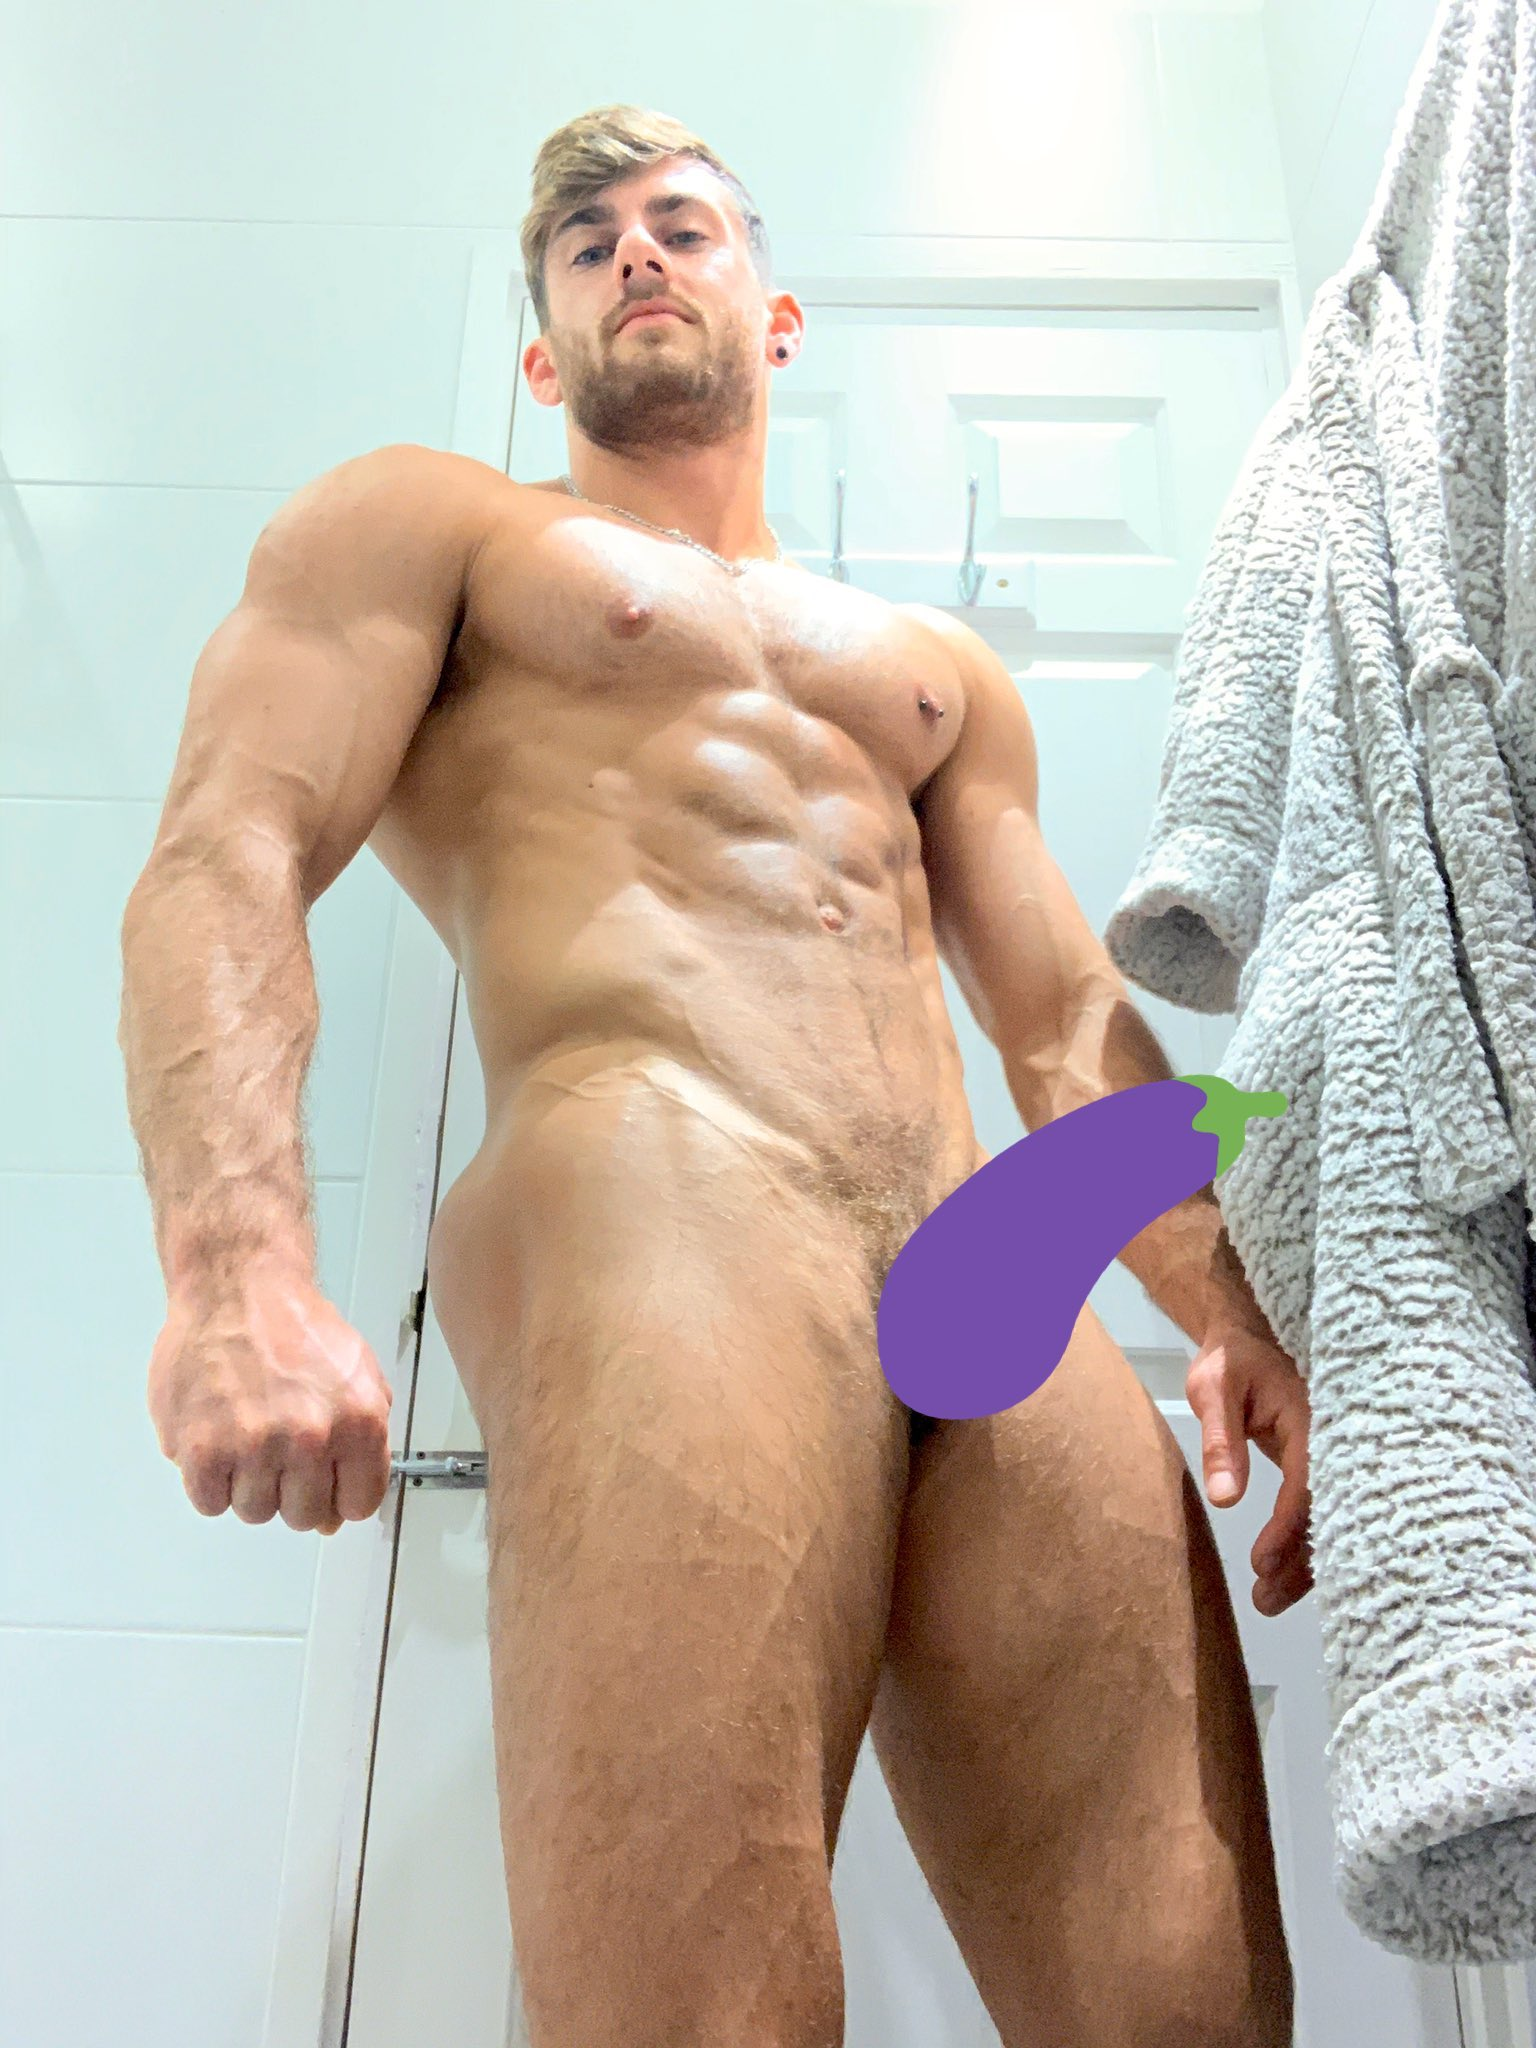 Amarter Porn the sexiest men of onlyfans – honest reviews of the best